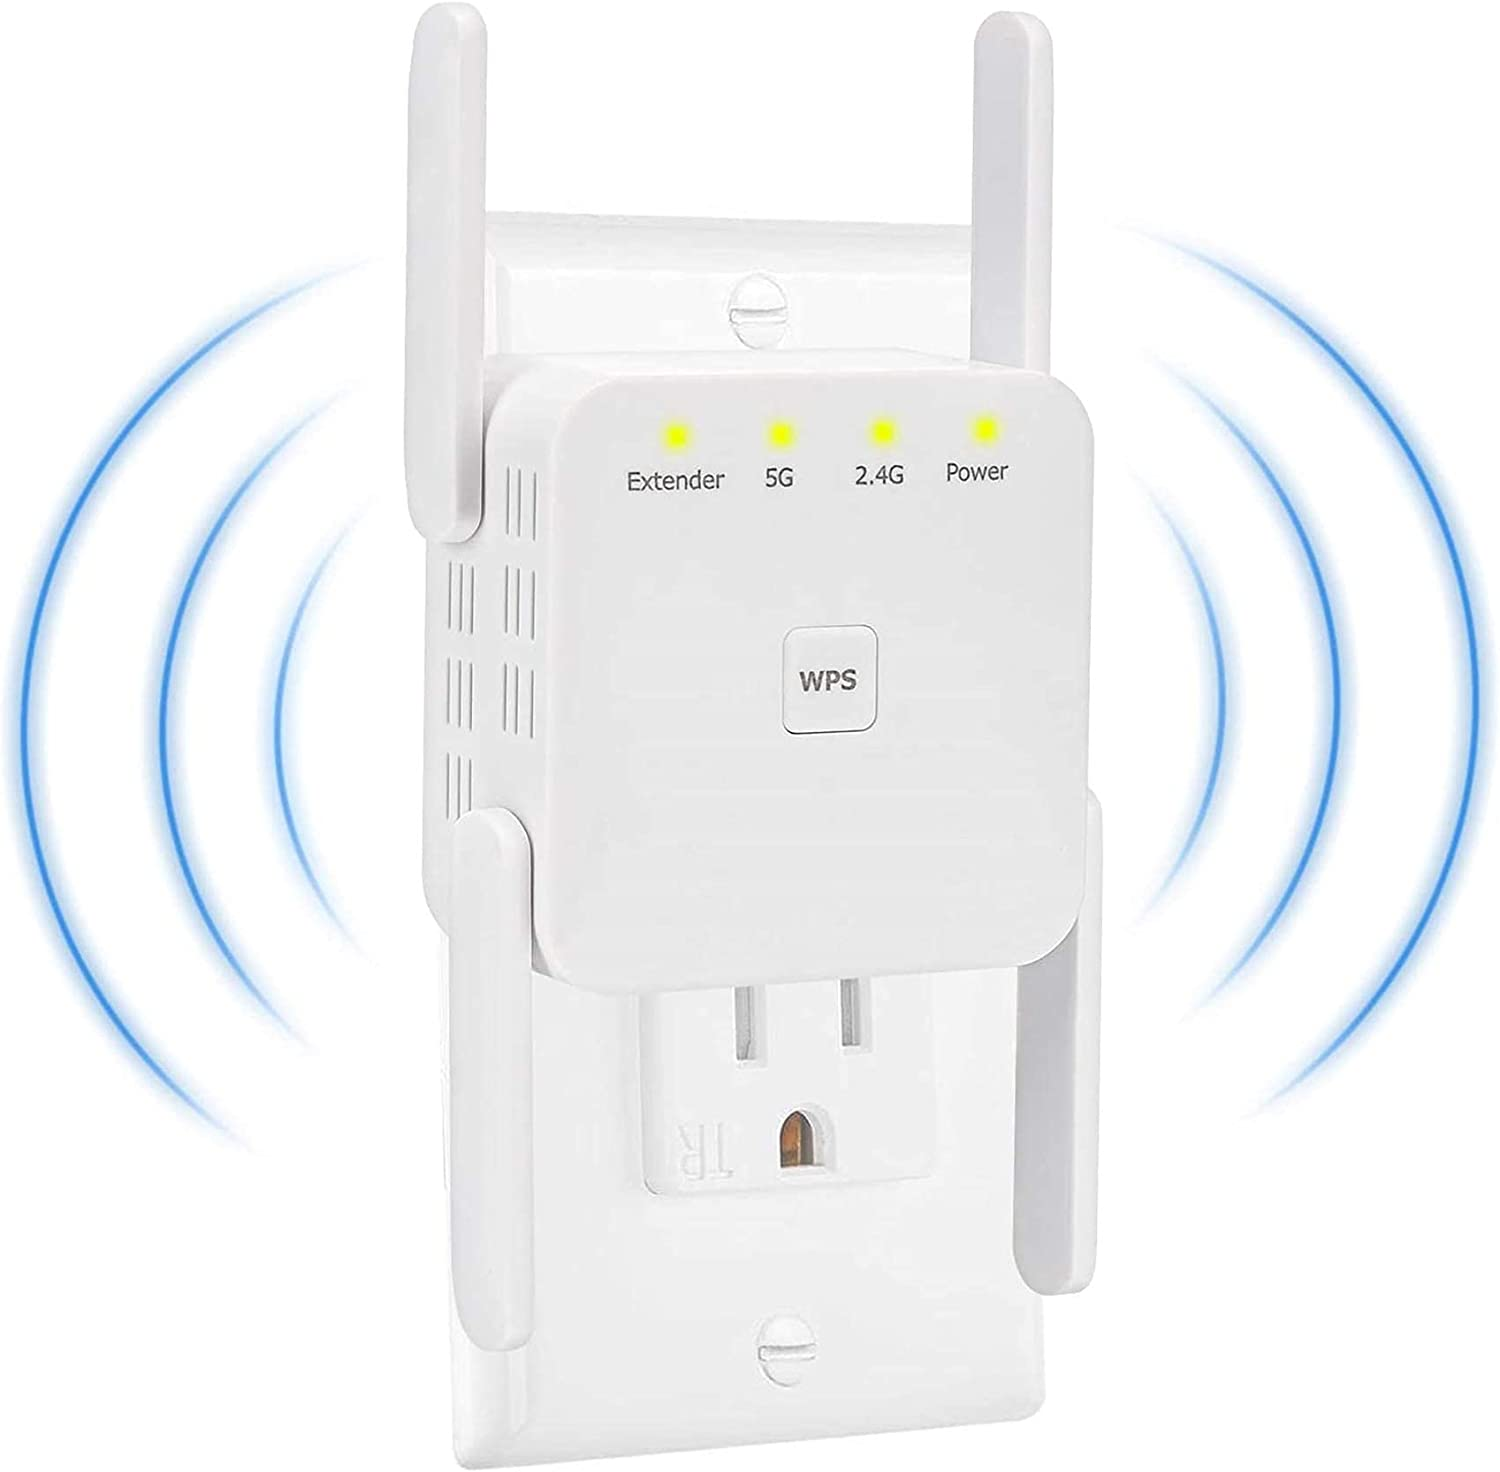 WiFi Range Max Be super welcome 86% OFF Extender 1200Mbps Repeater Booster Wireless Signal